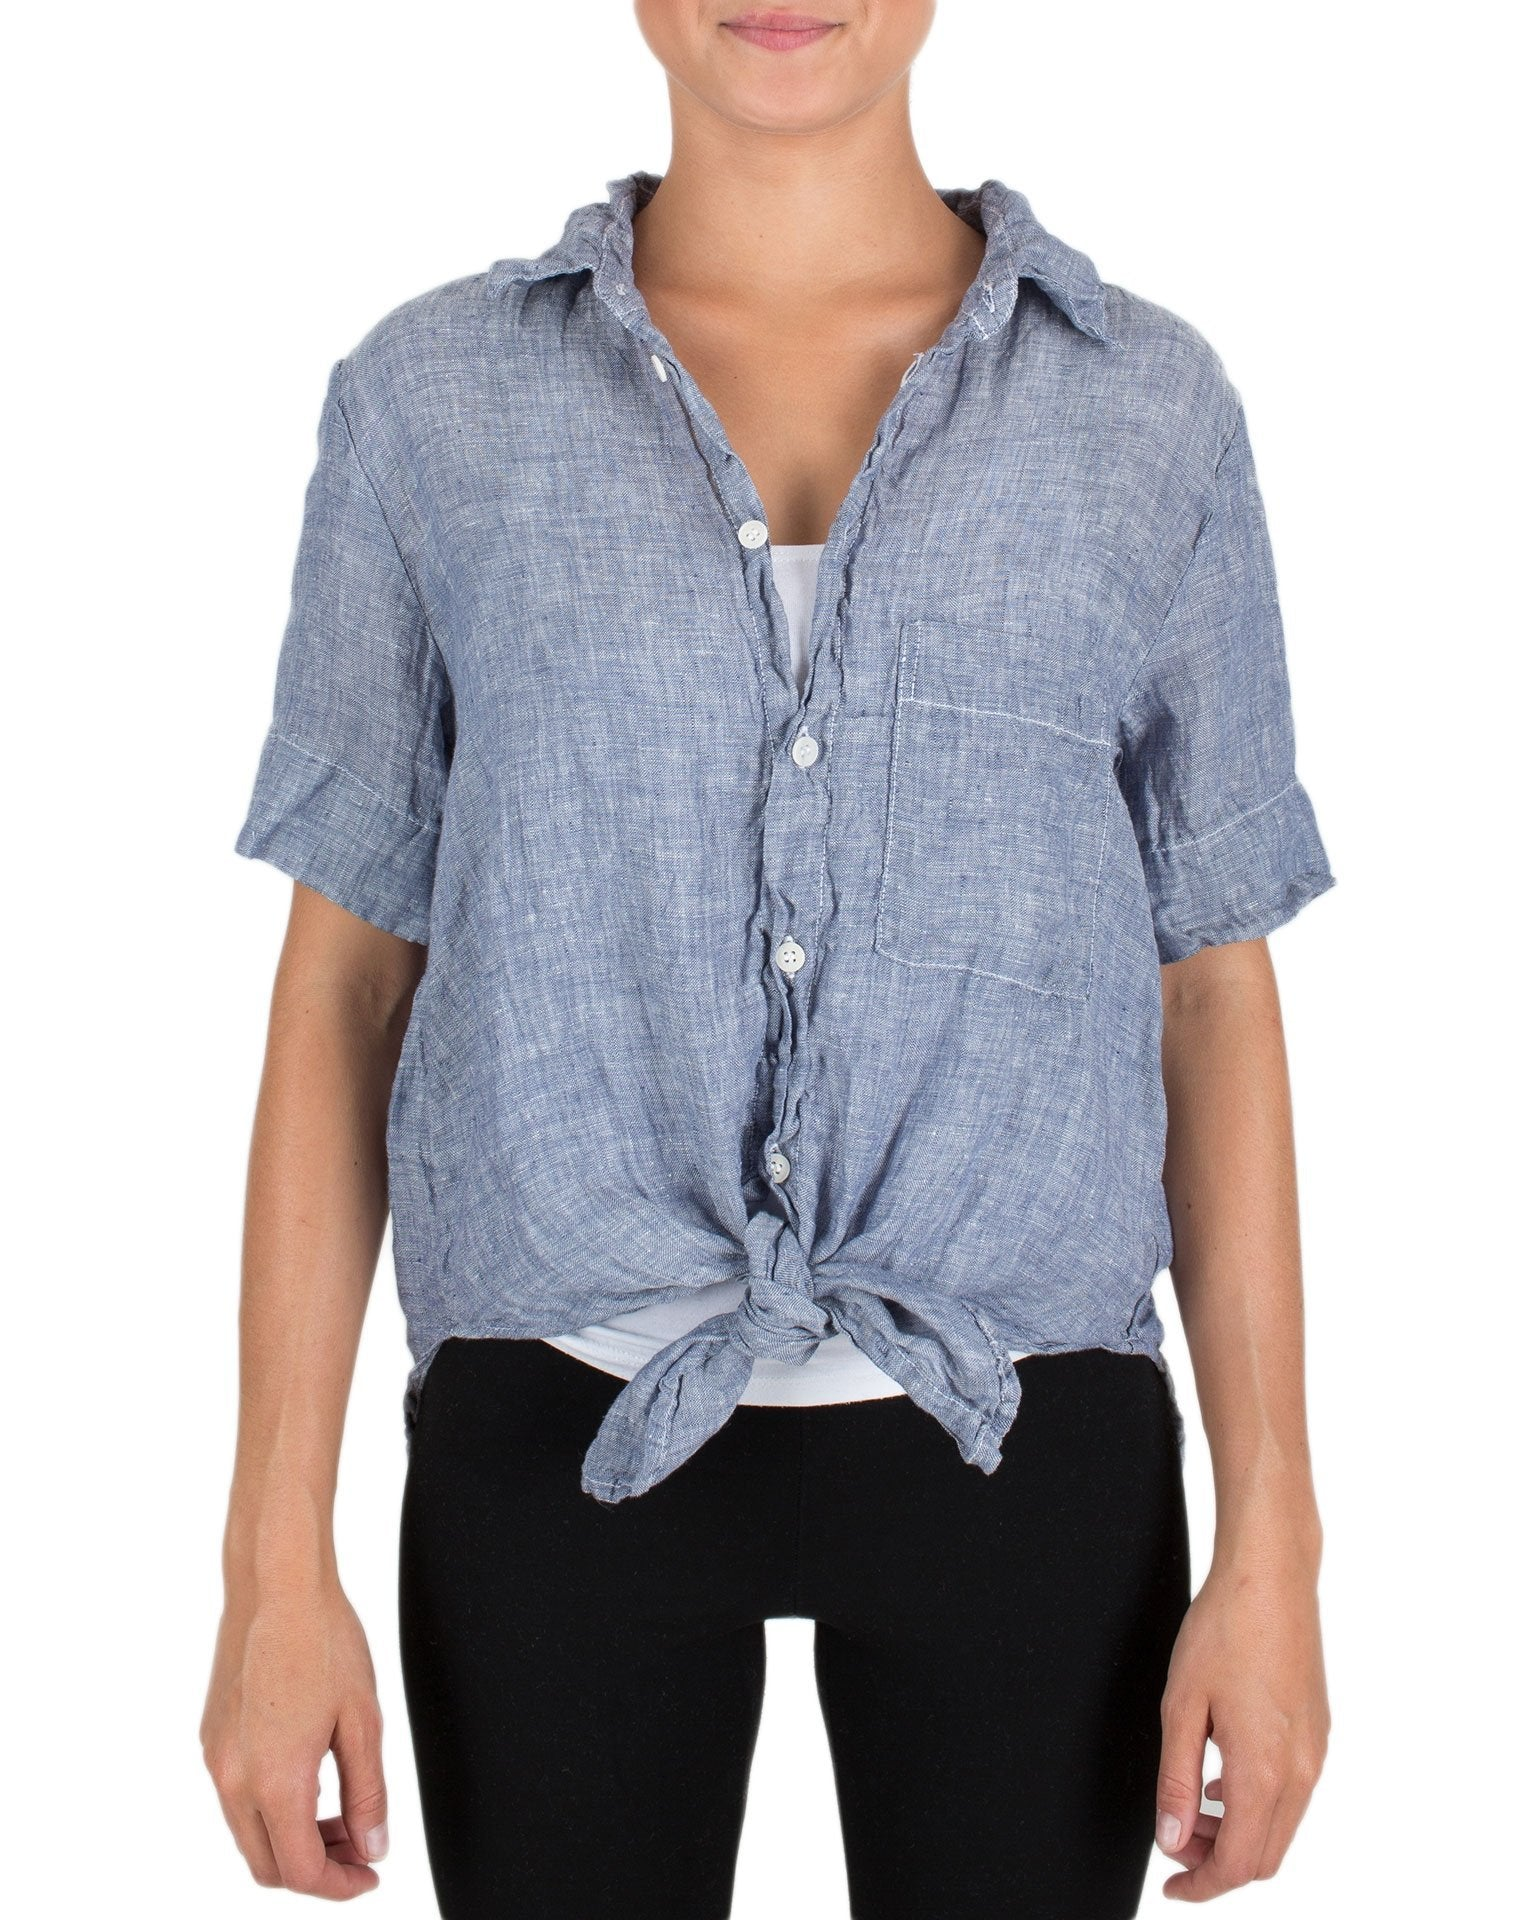 CP Shades Clothing Ink Chambray / XS Georgie S/S Tie Blouse in Ink Chambray